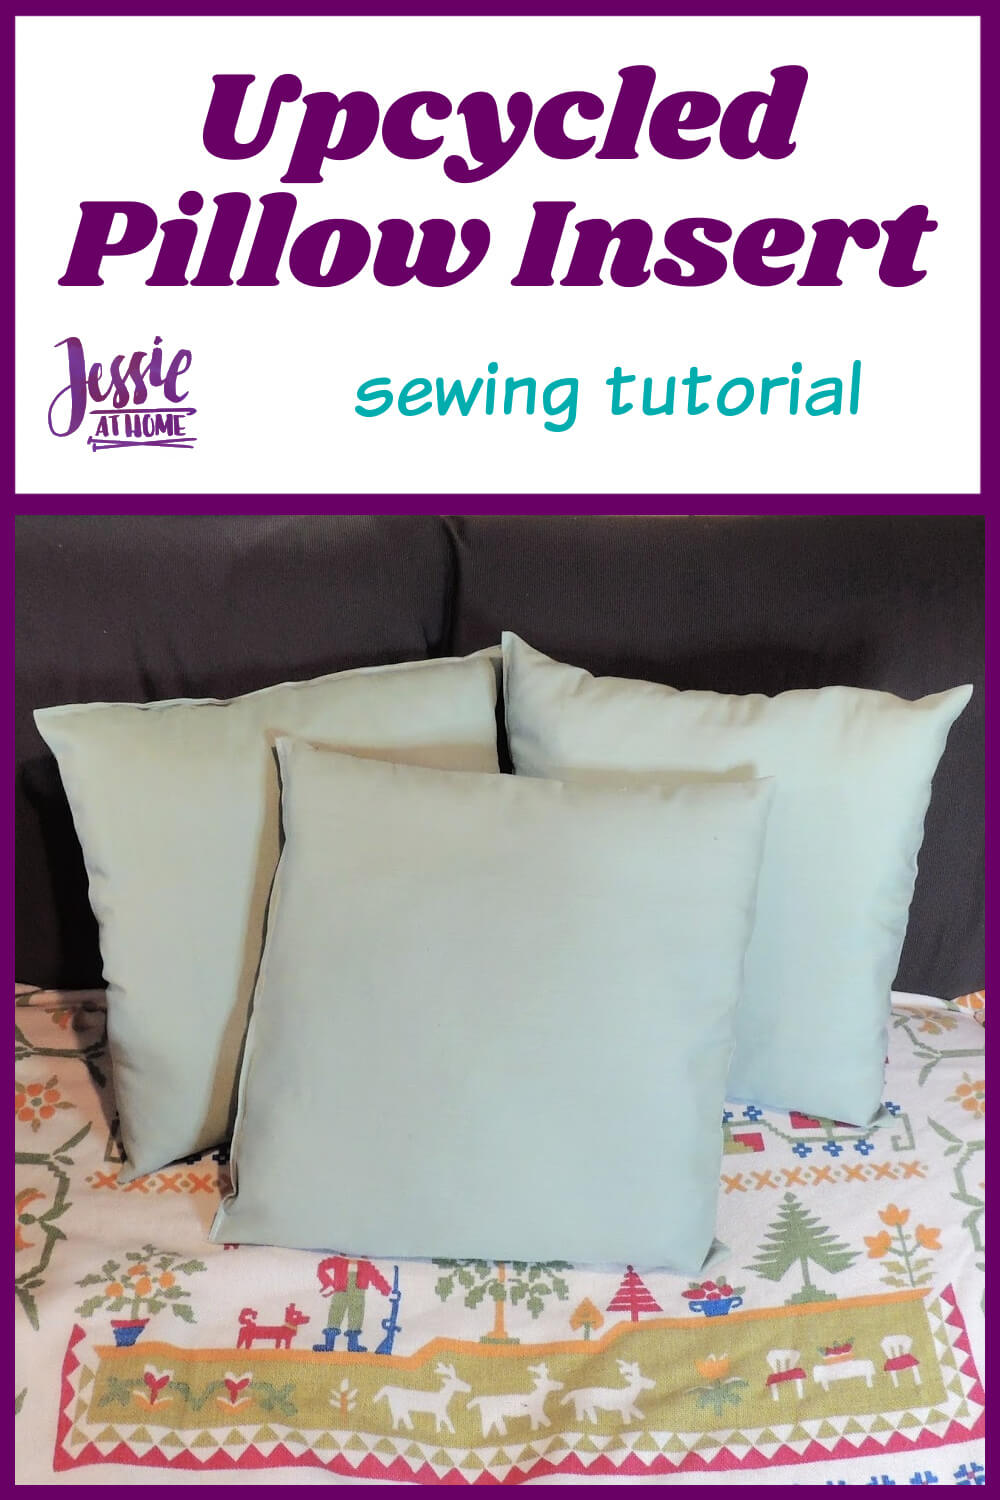 Upcycled Pillow Insert sewing tutorial by Jessie At Home - Pin 1